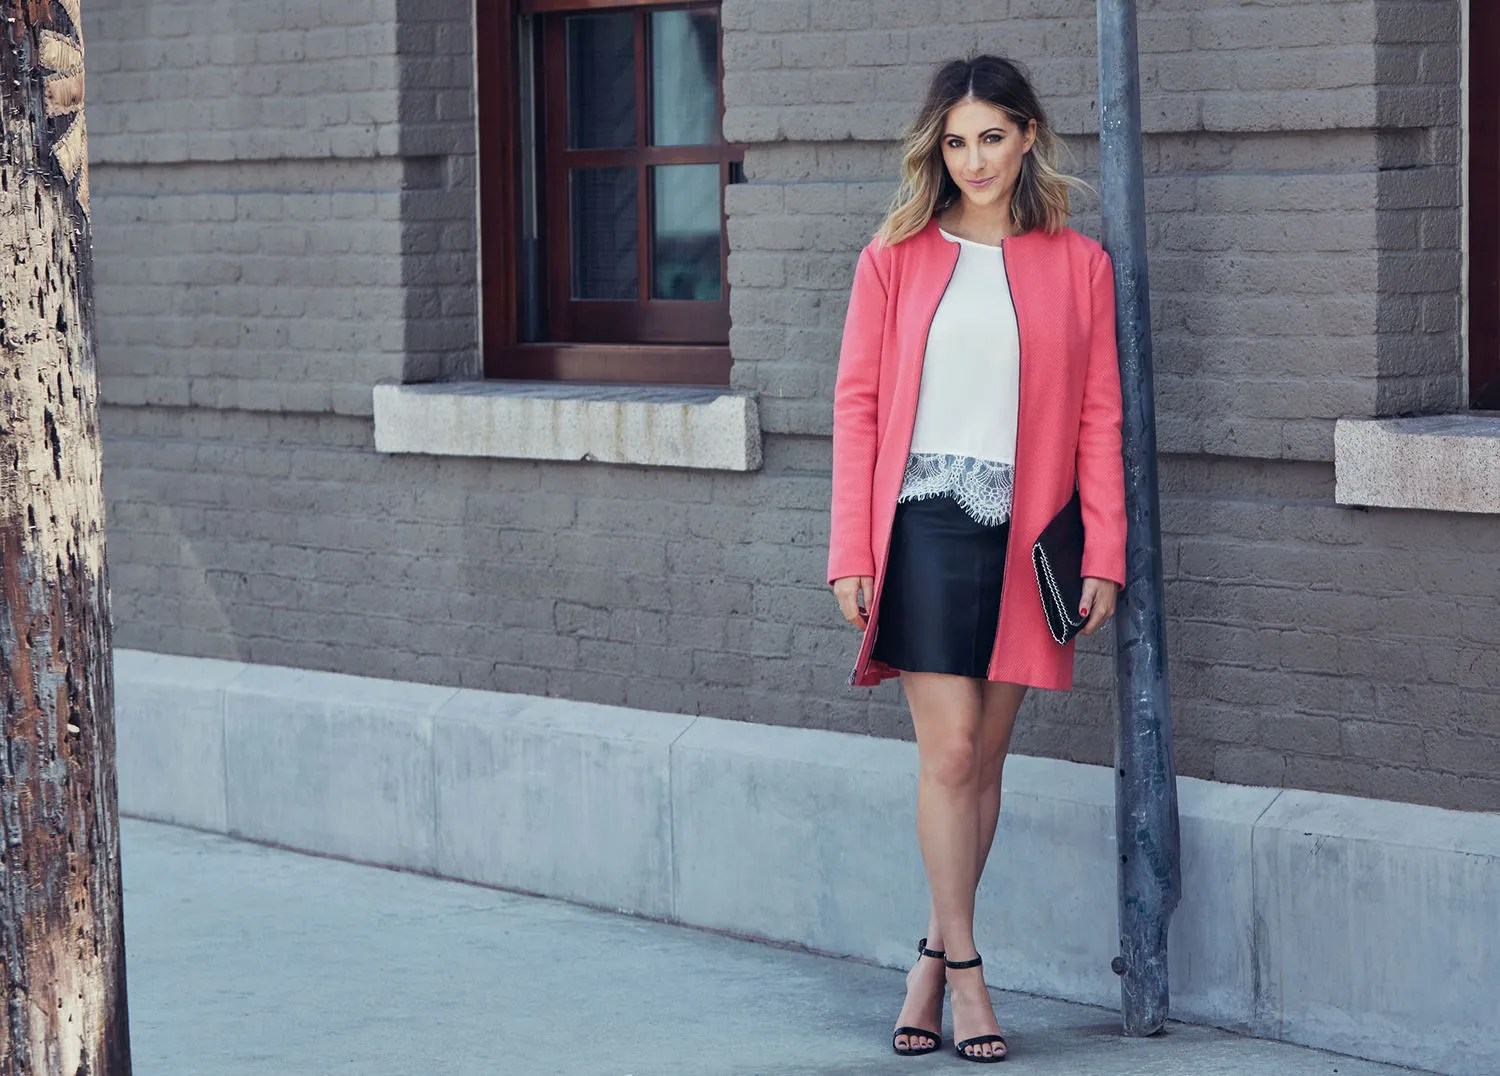 Cupcakes And Cashmere's Emily Schuman Nordstrom Collection